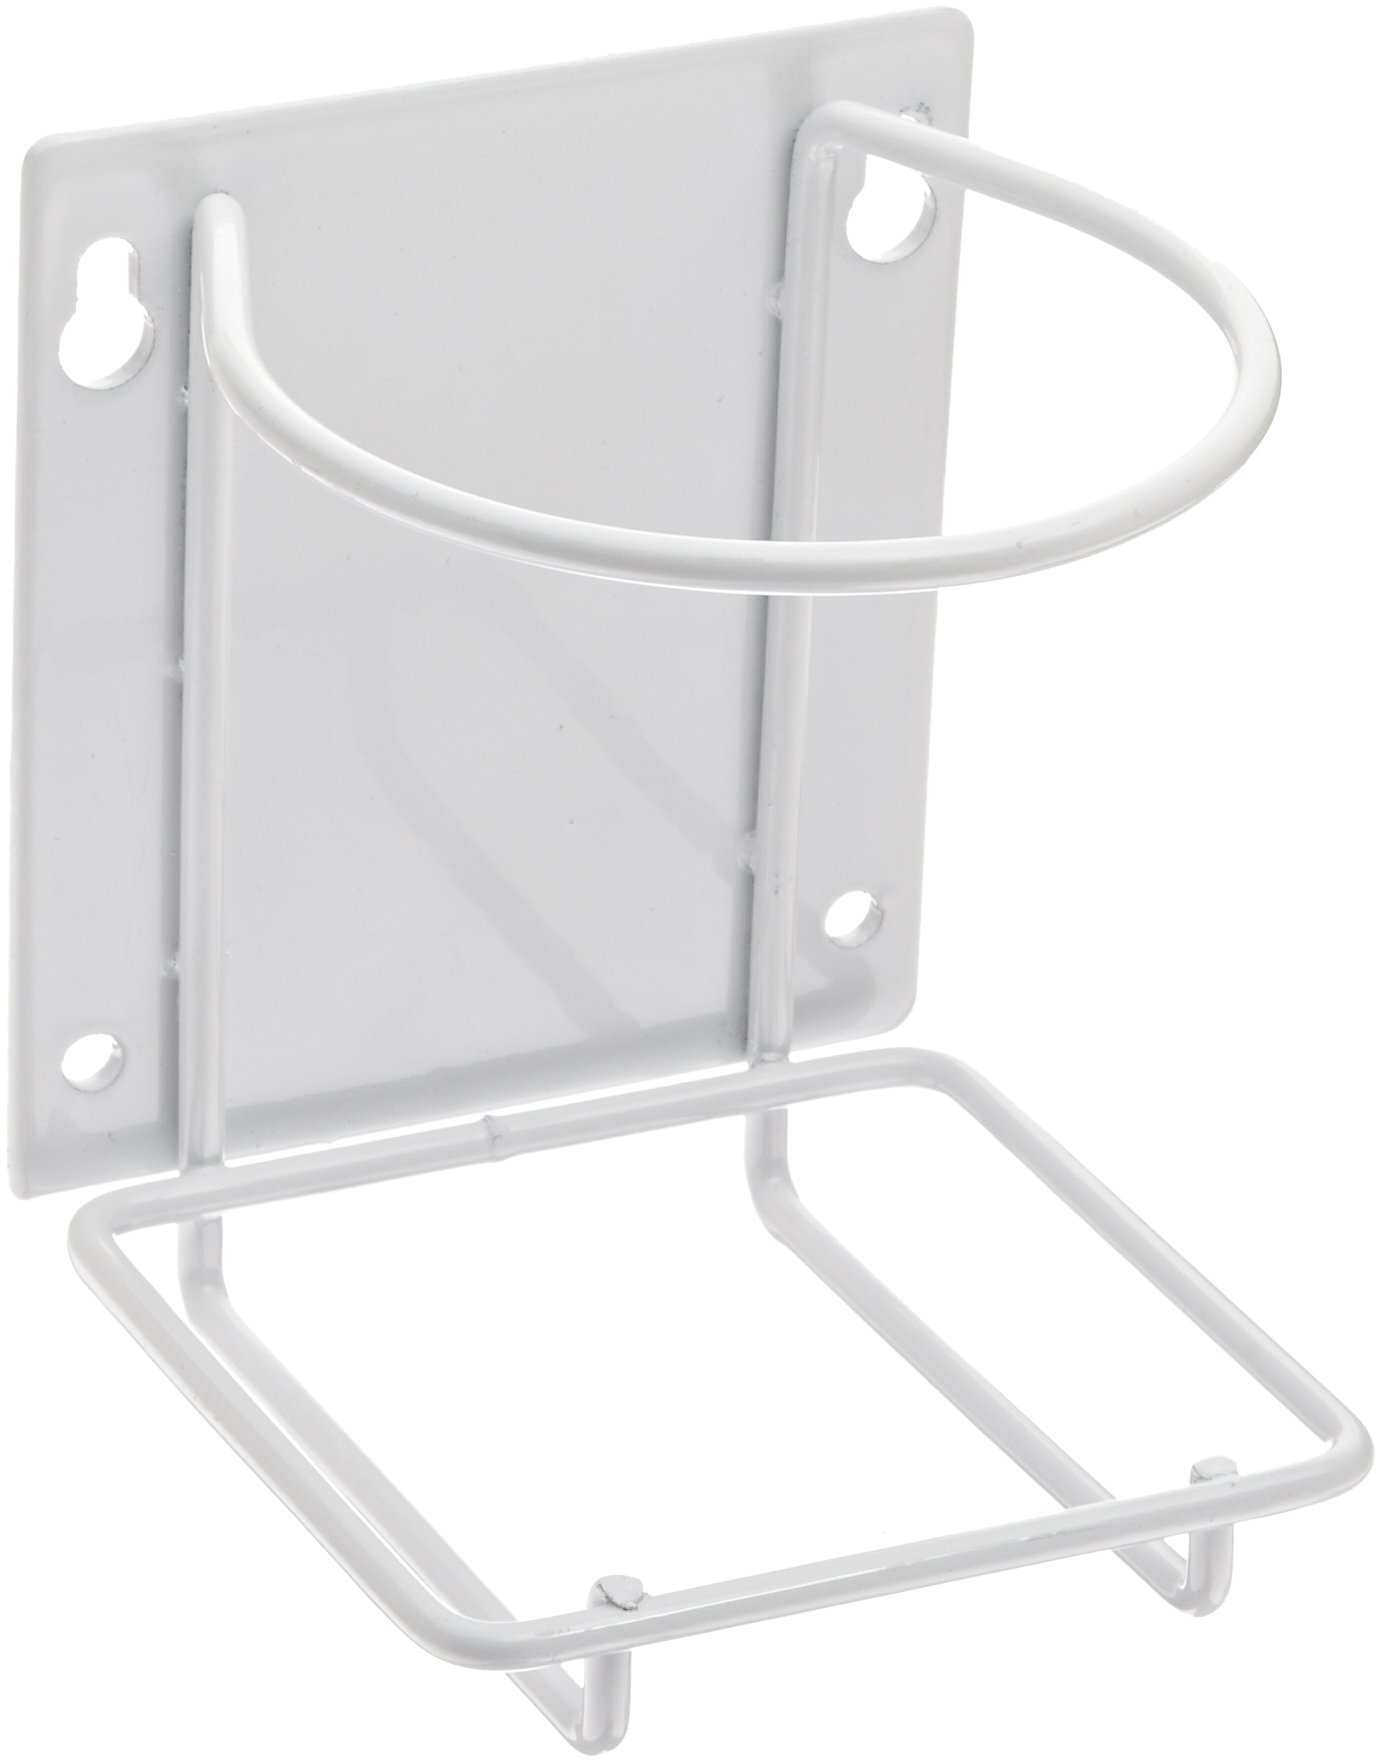 Rubbermaid Commercial 3486596 Wall Bracket for 18-ounce Soap Bottle by Rubbermaid Commercial Products